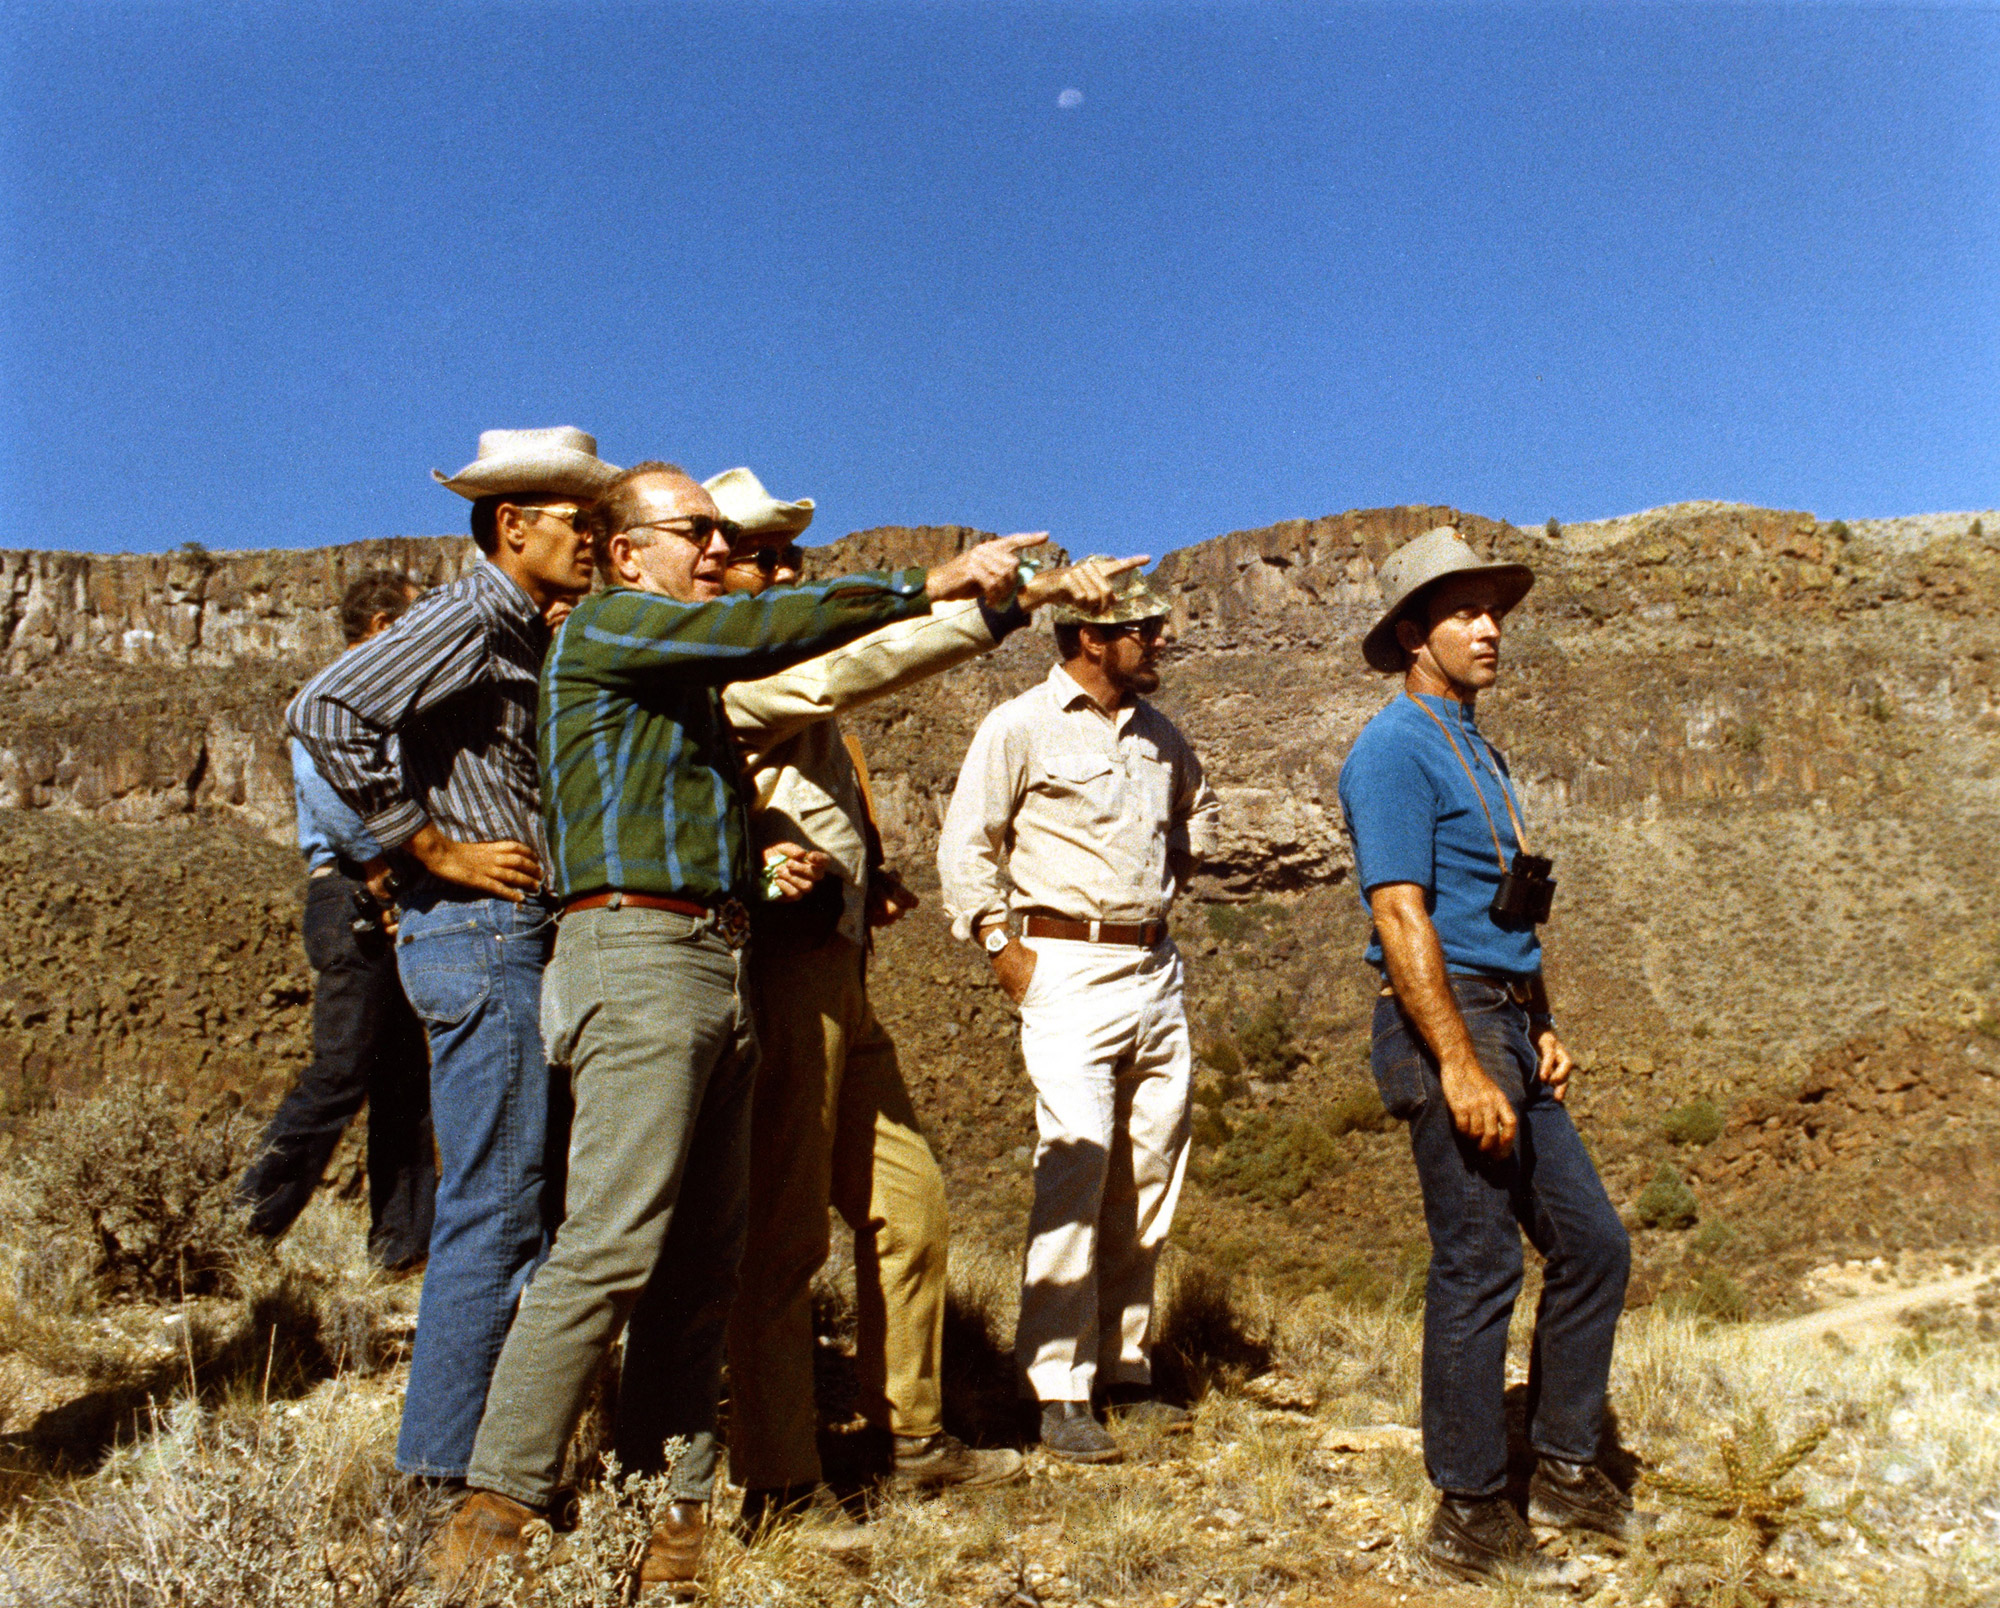 Lee Silver points out some geological observations to his astro-geologists in training, Charlie Duke and John Young. Credit: NASA/U.S. Geological Survey via Retro Space Images